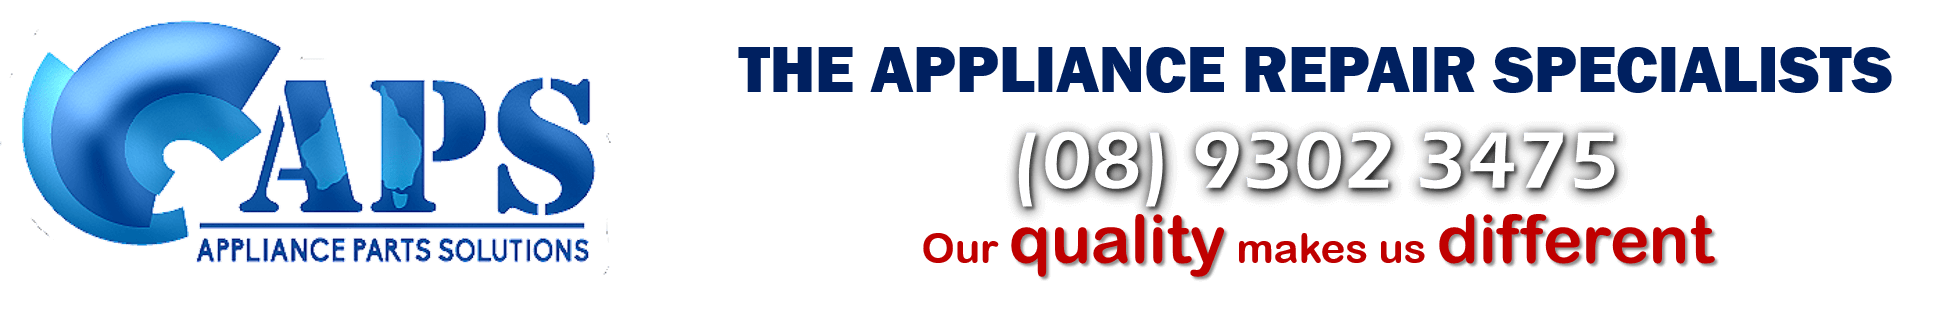 appliance repairs perth